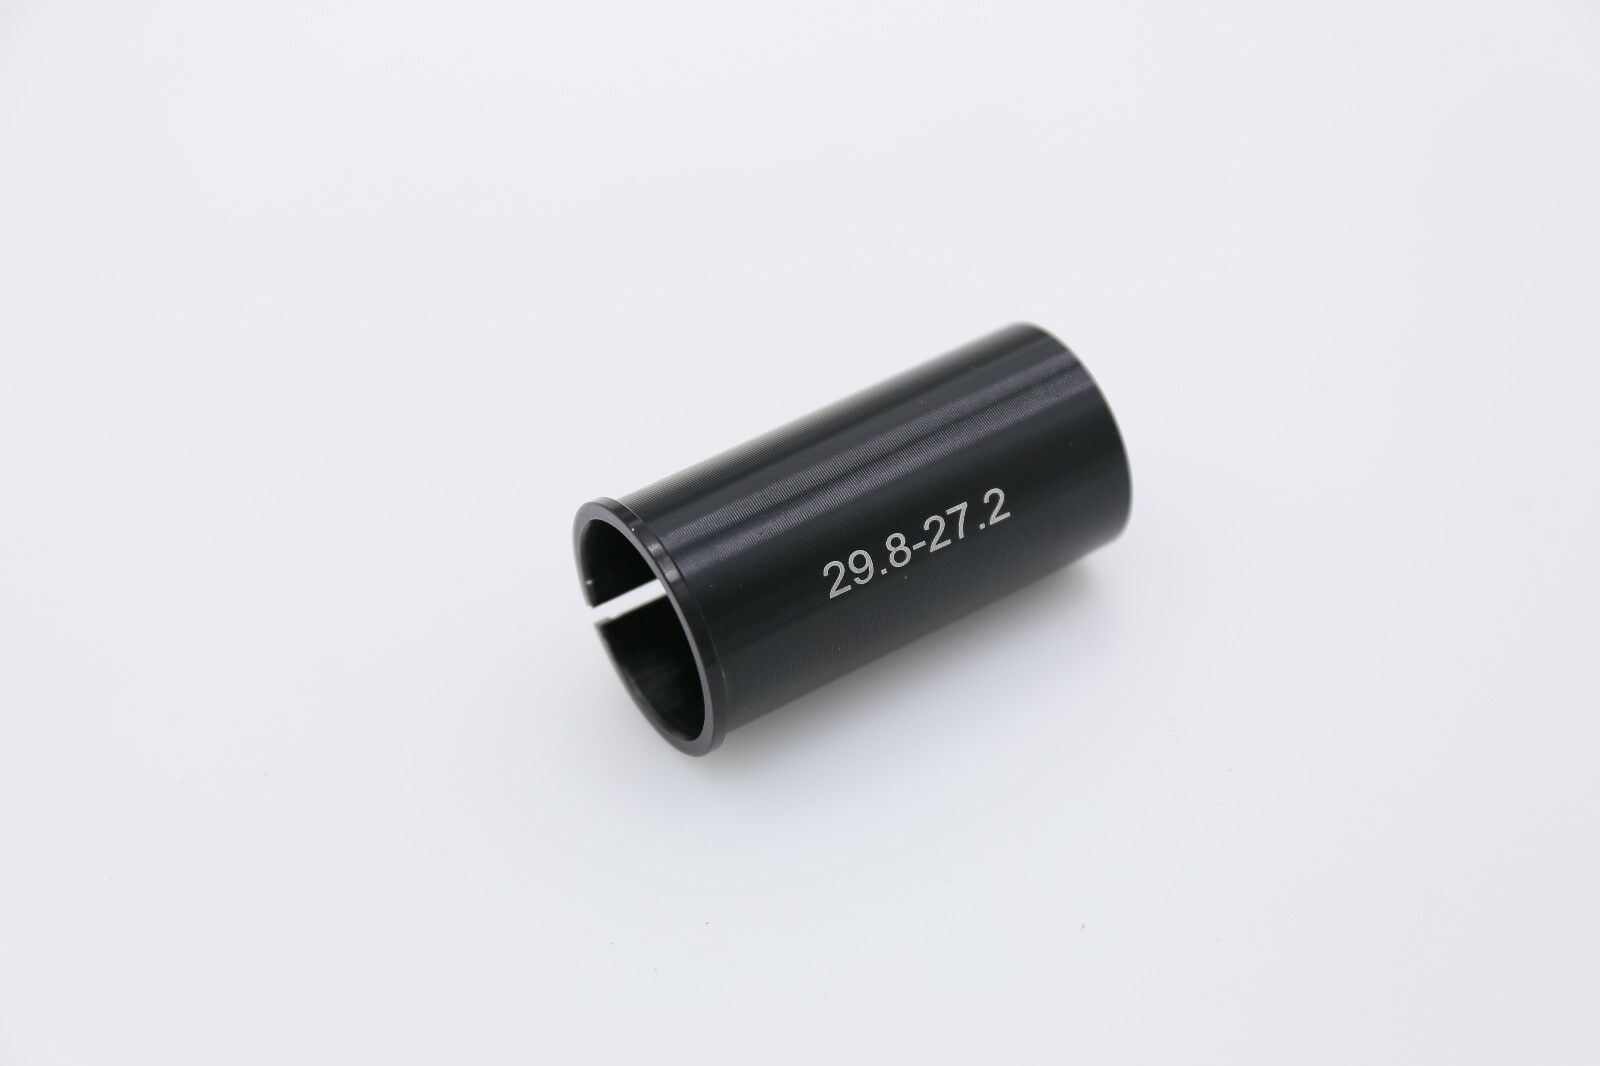 SeatPost Shims Reduction Shim 27.2 To 29.8